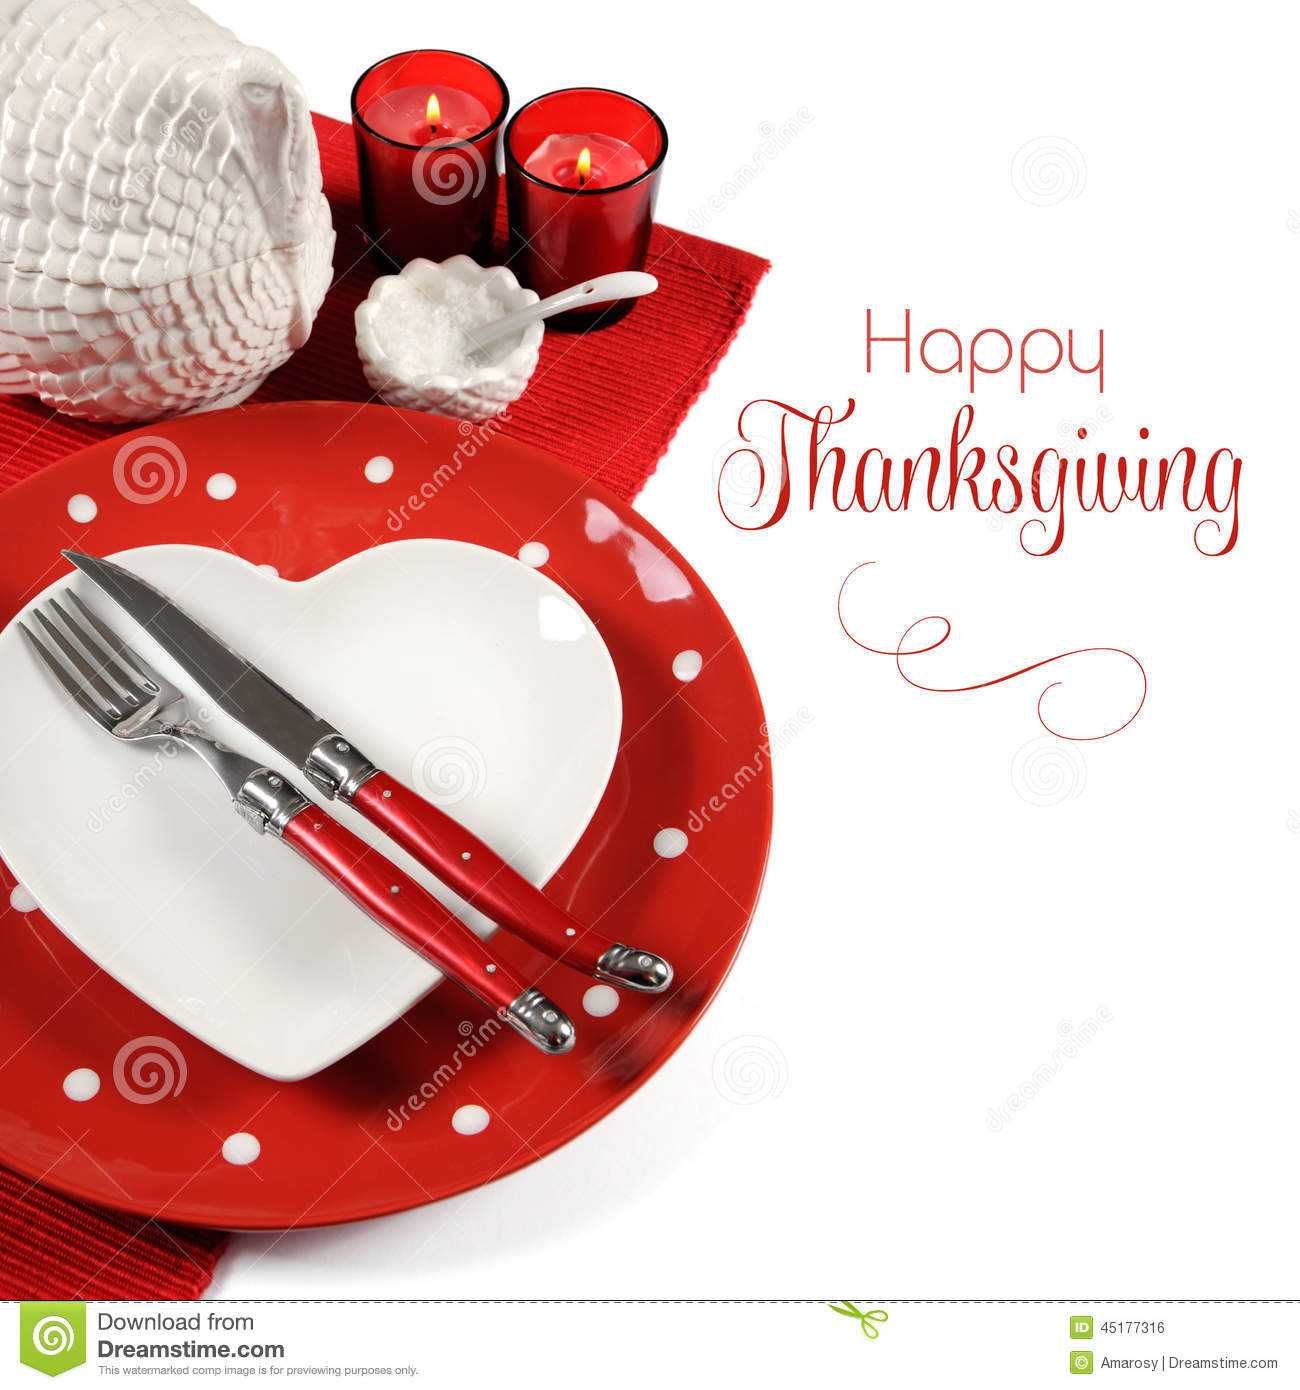 Red Theme Dining Table Place Setting With Sample Text  : red theme dining table place setting sample text happy thanksgiving christmas vintage turkey tureen white background 45177316 from www.dreamstime.com size 1300 x 1390 jpeg 165kB